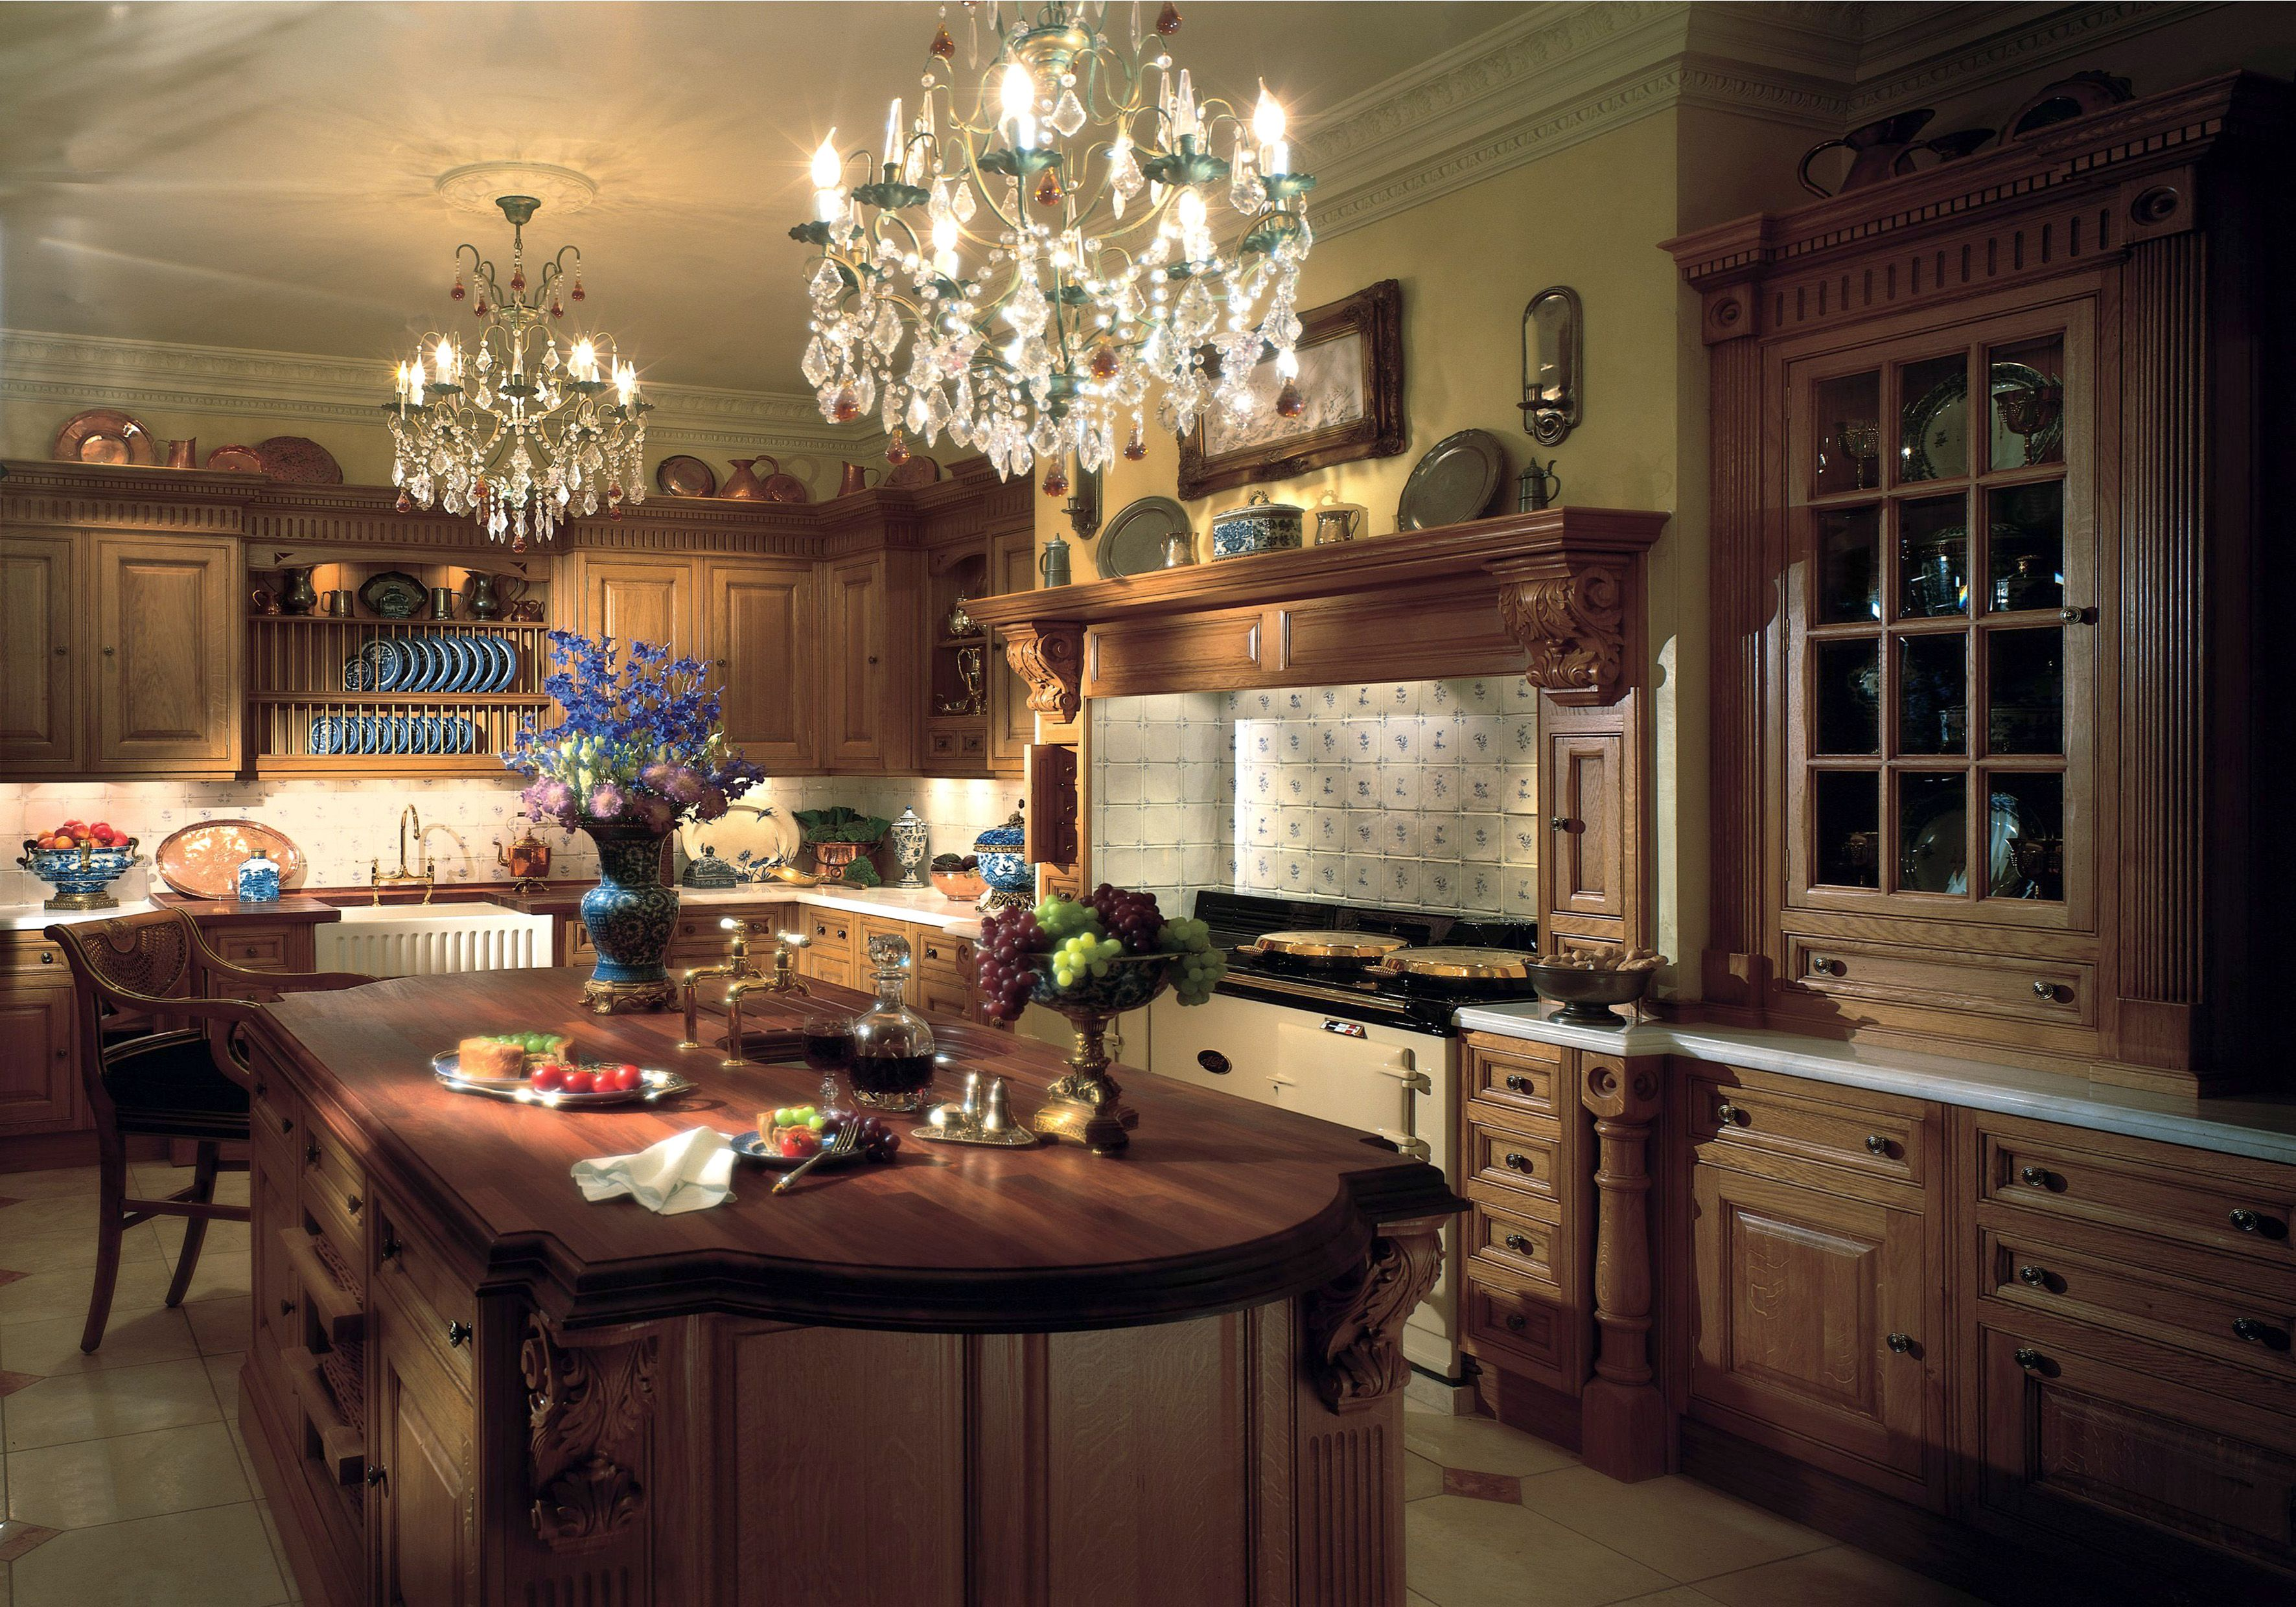 Kitchen Design Victoria Clive Christian Oak Victorian Kitchen W Aga Range Lloyds